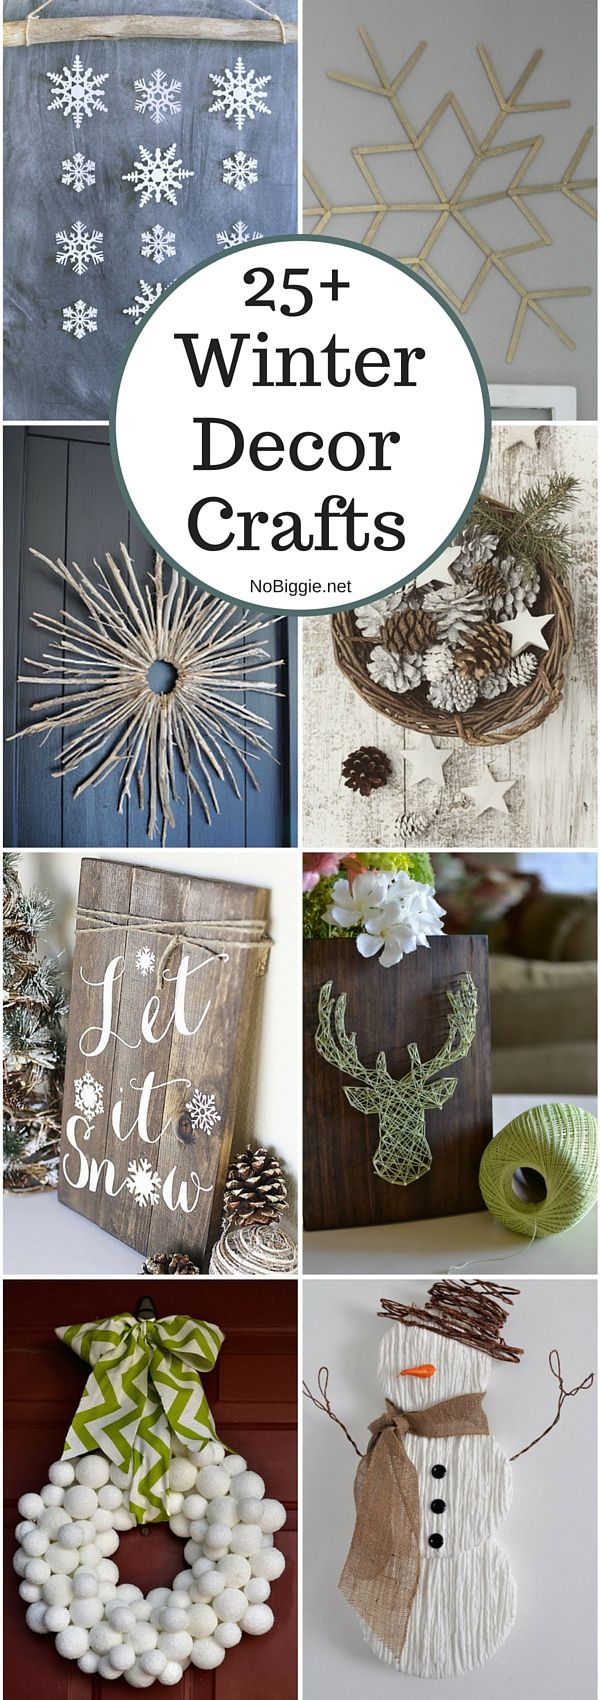 25+ Winter decor crafts | NoBiggie.net